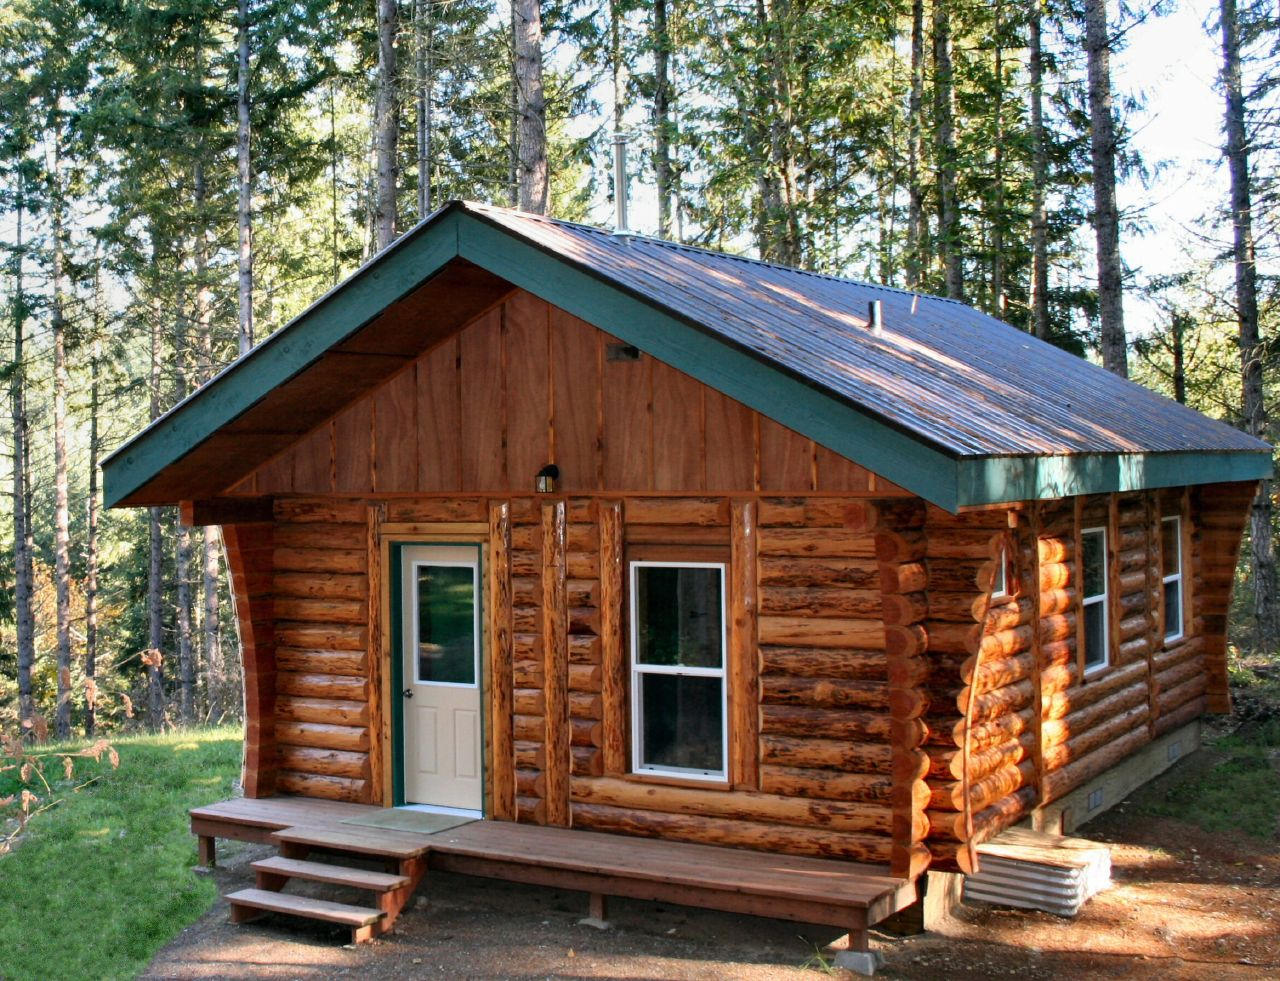 Thoughtskoto for Log cabins homes